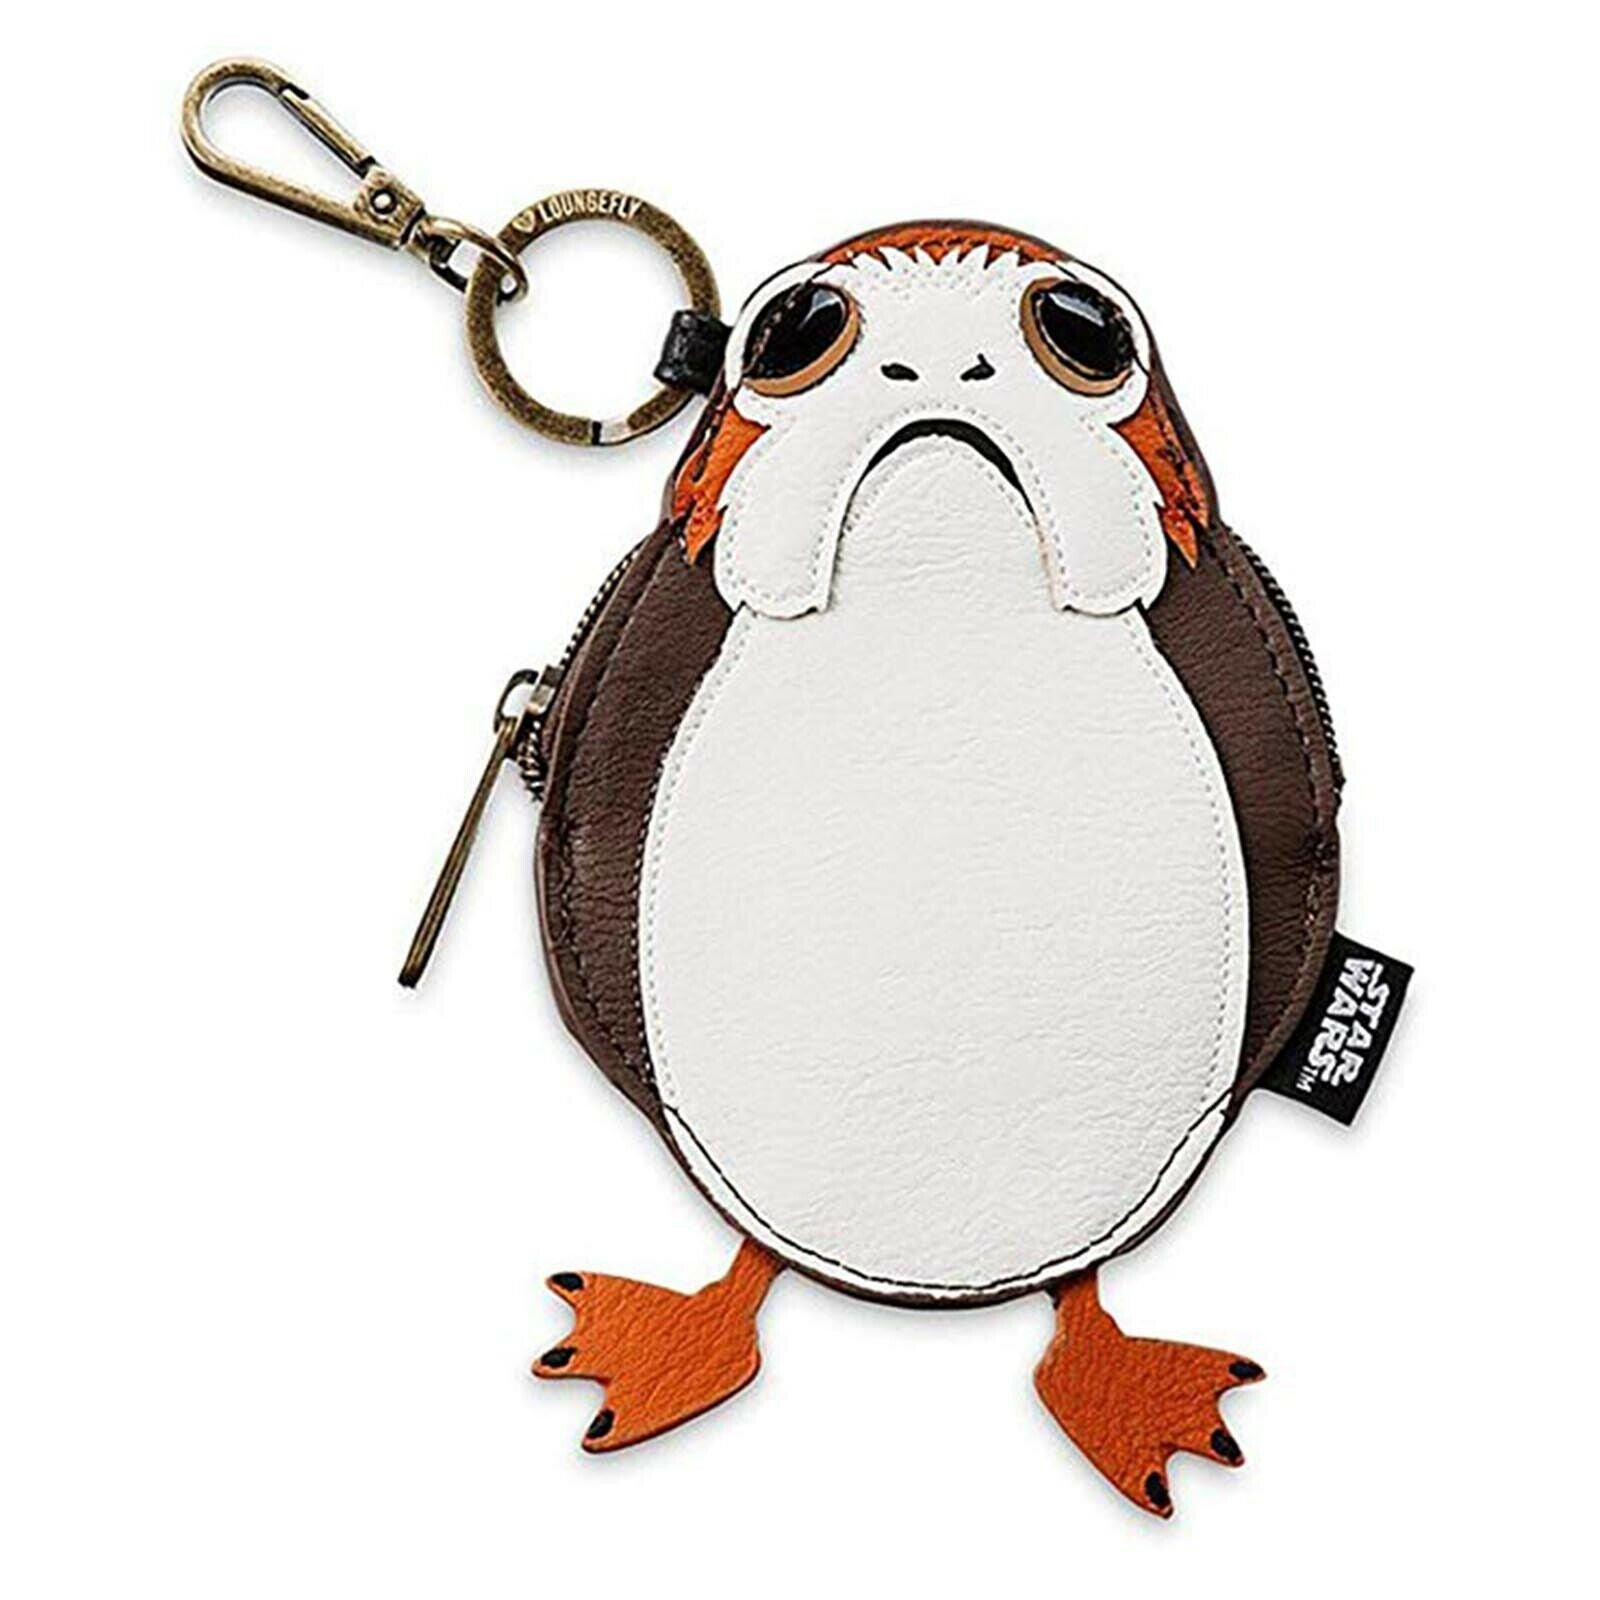 Loungefly x Star Wars  Porg  Zipper Coin Bag with Clip